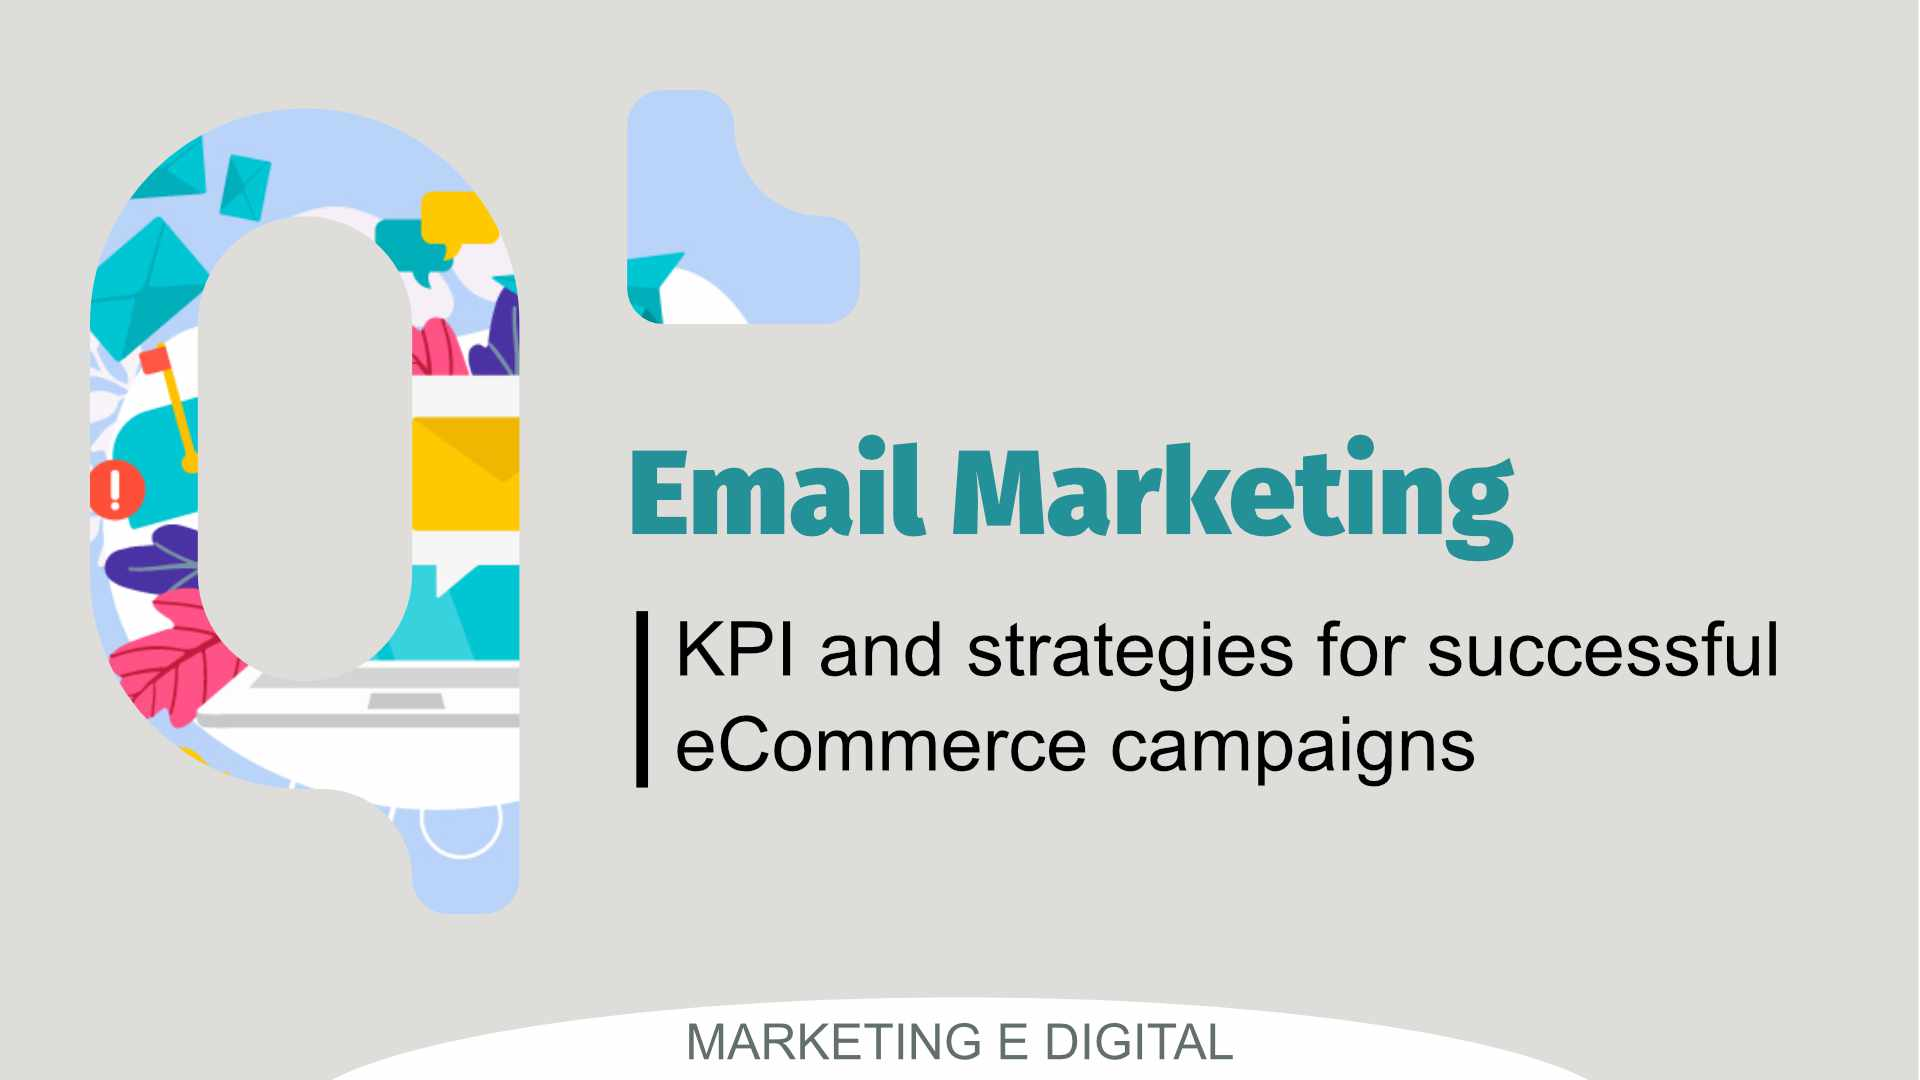 Email Marketing KPI and strategies